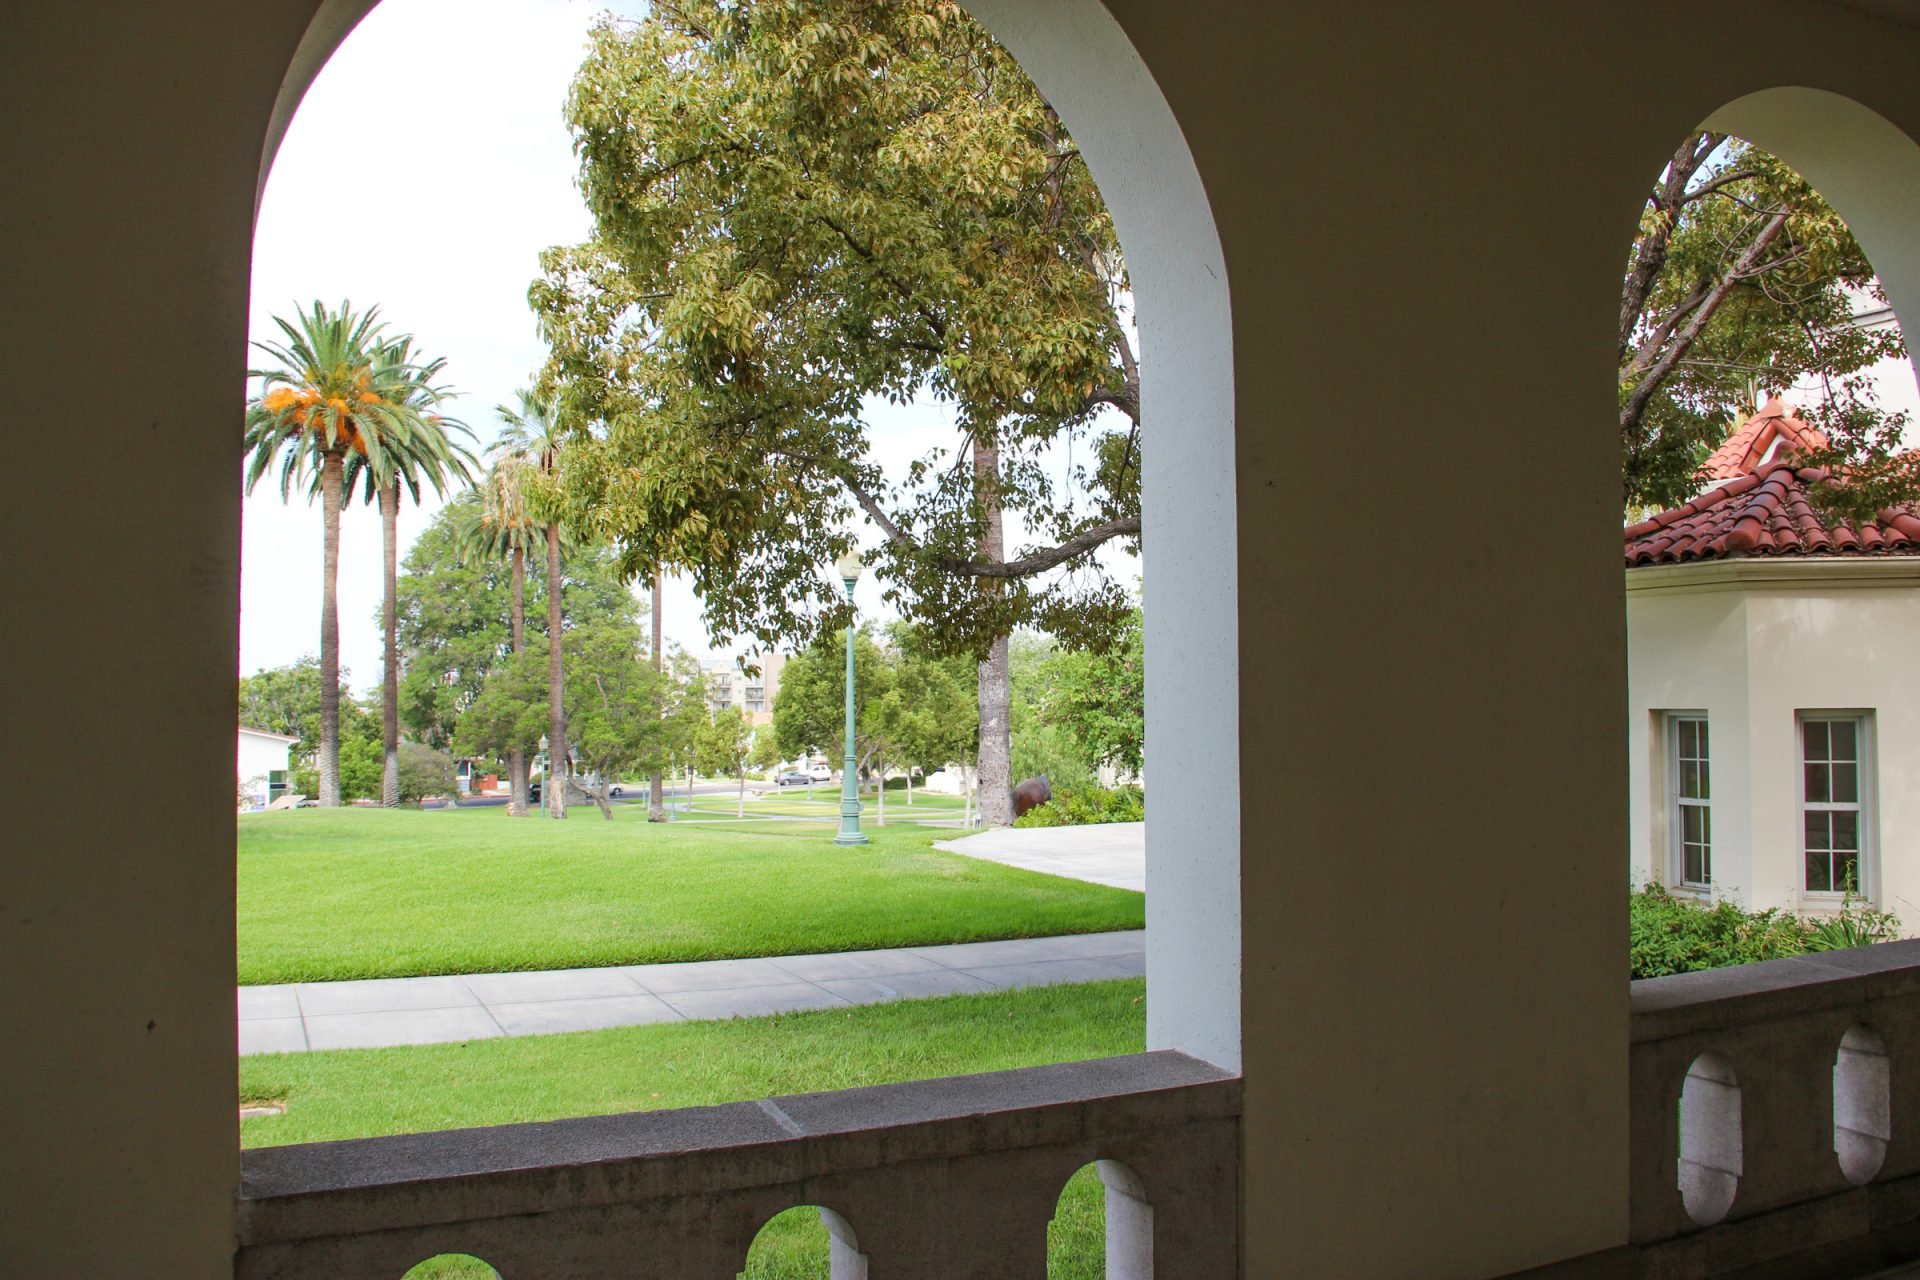 Arch Looking Out at Lawn with Trees